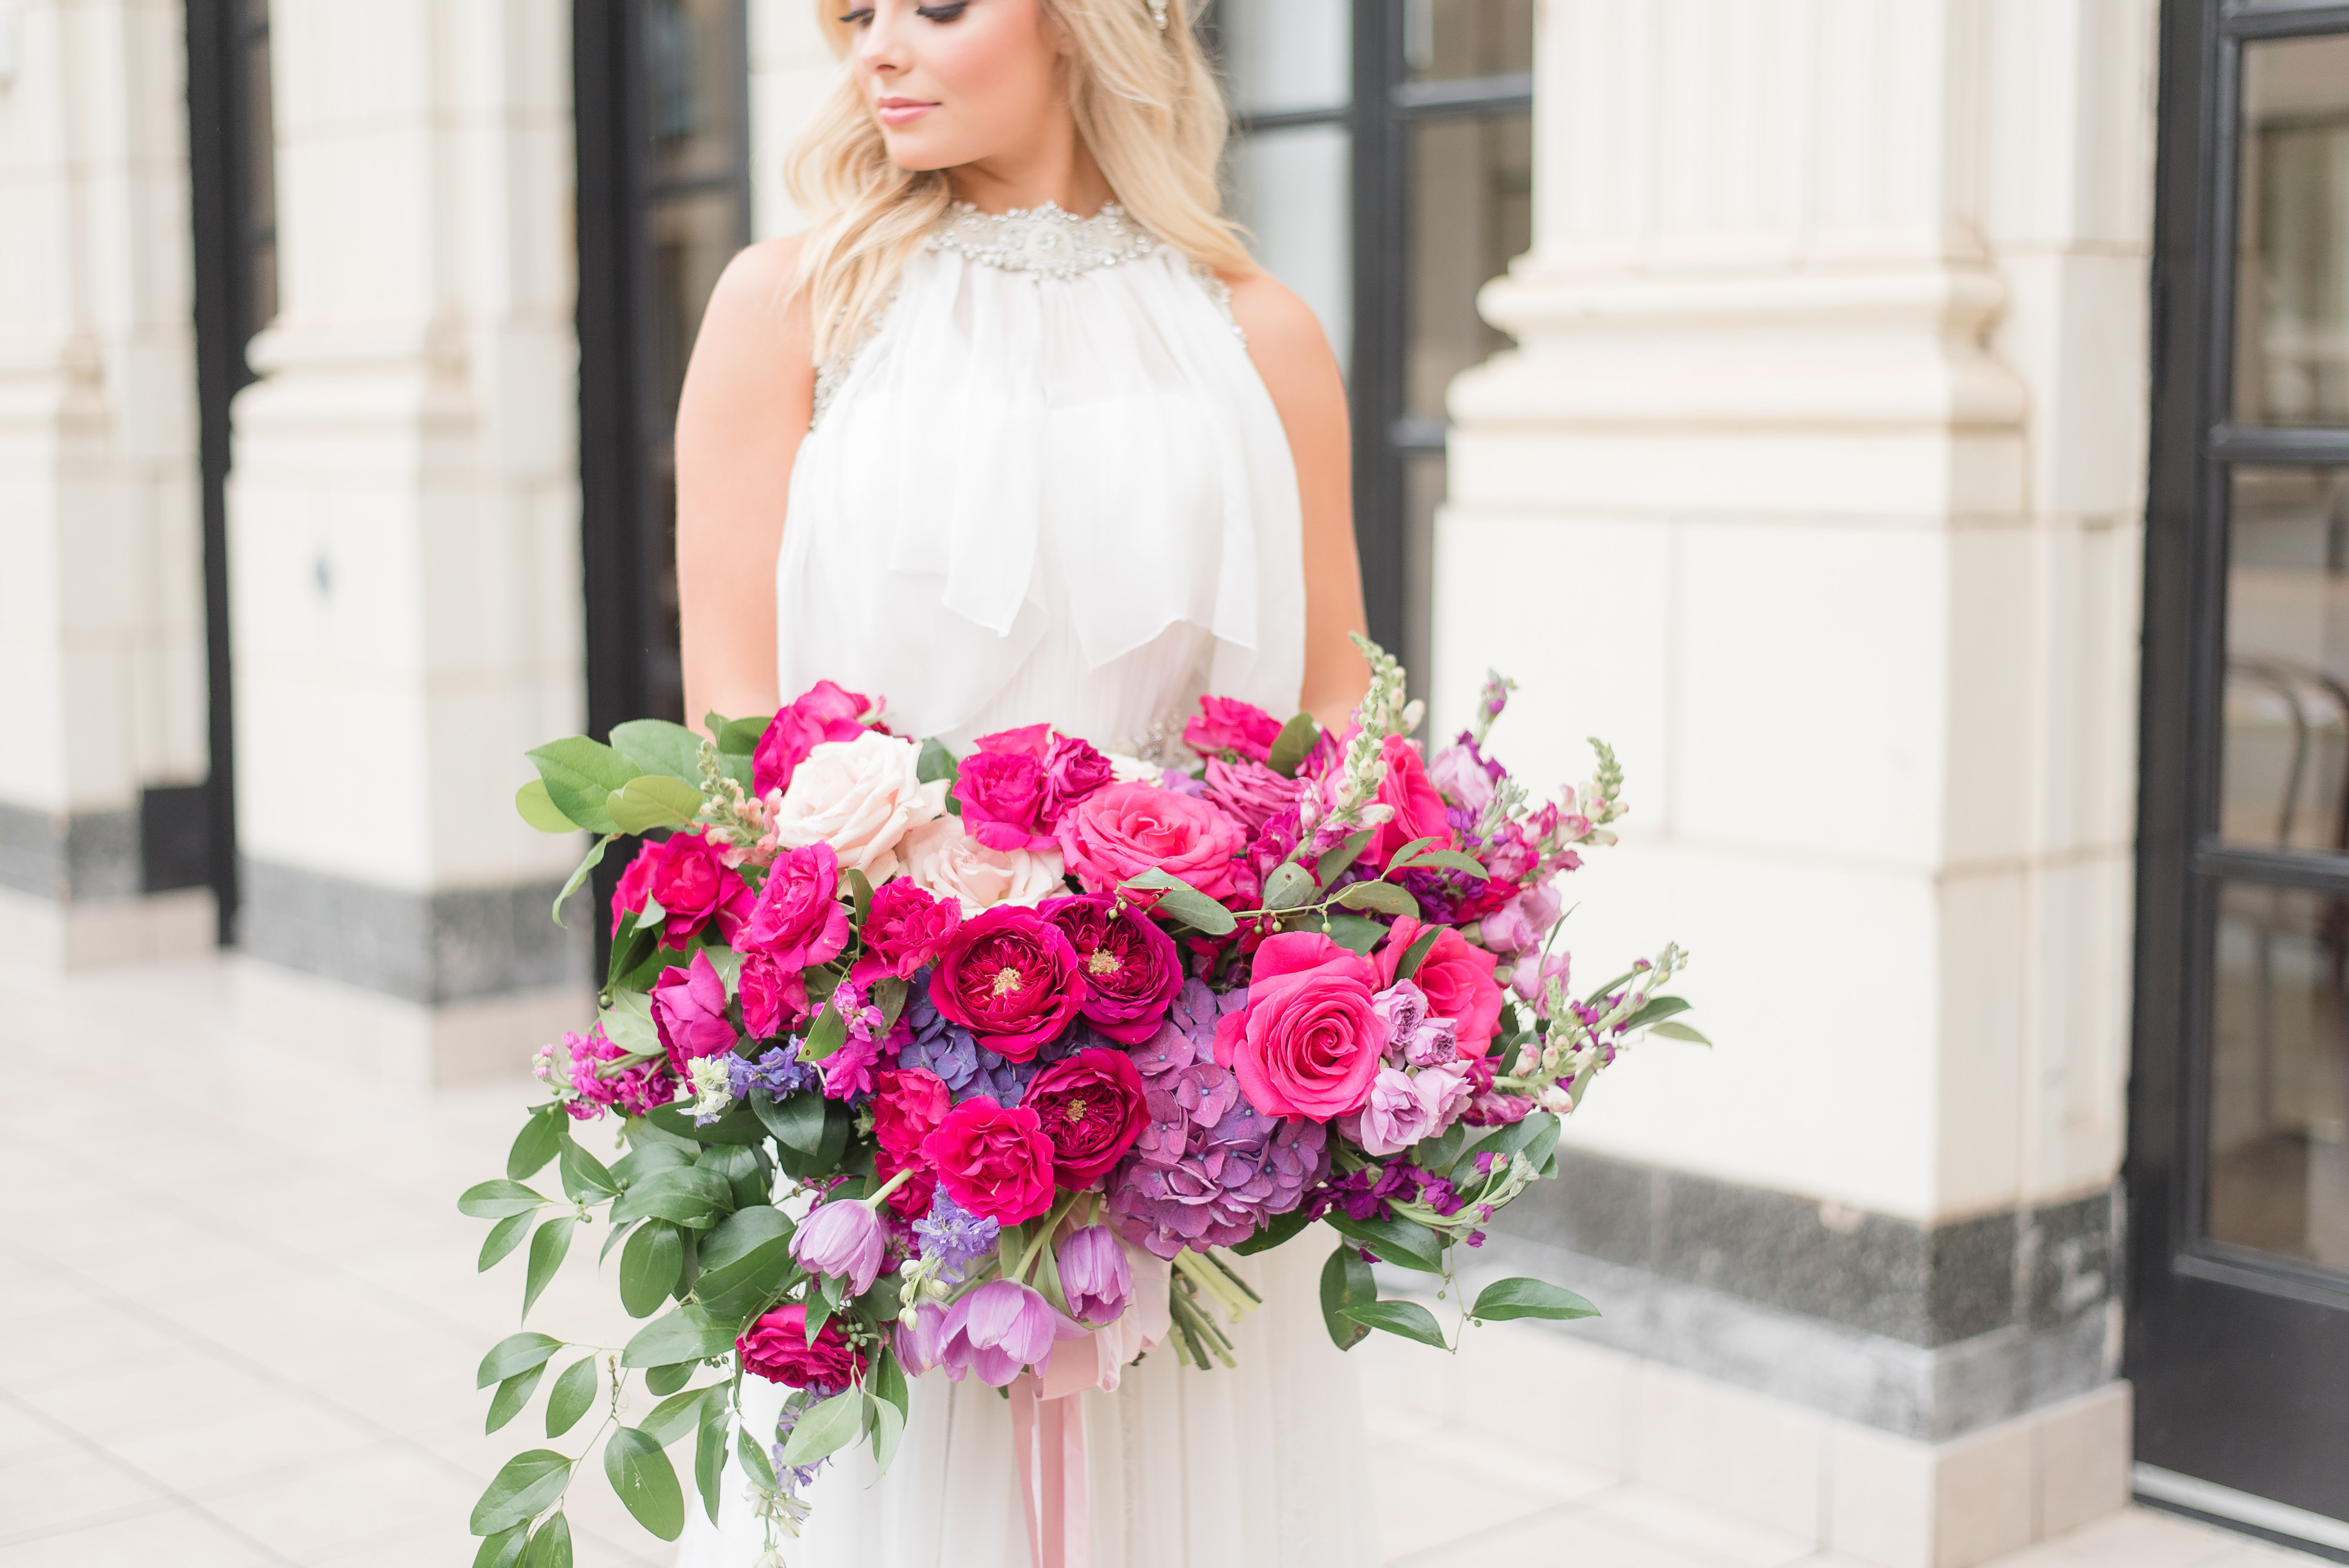 Purple Wedding Bouquets are a Top Bridal Trend Right Now